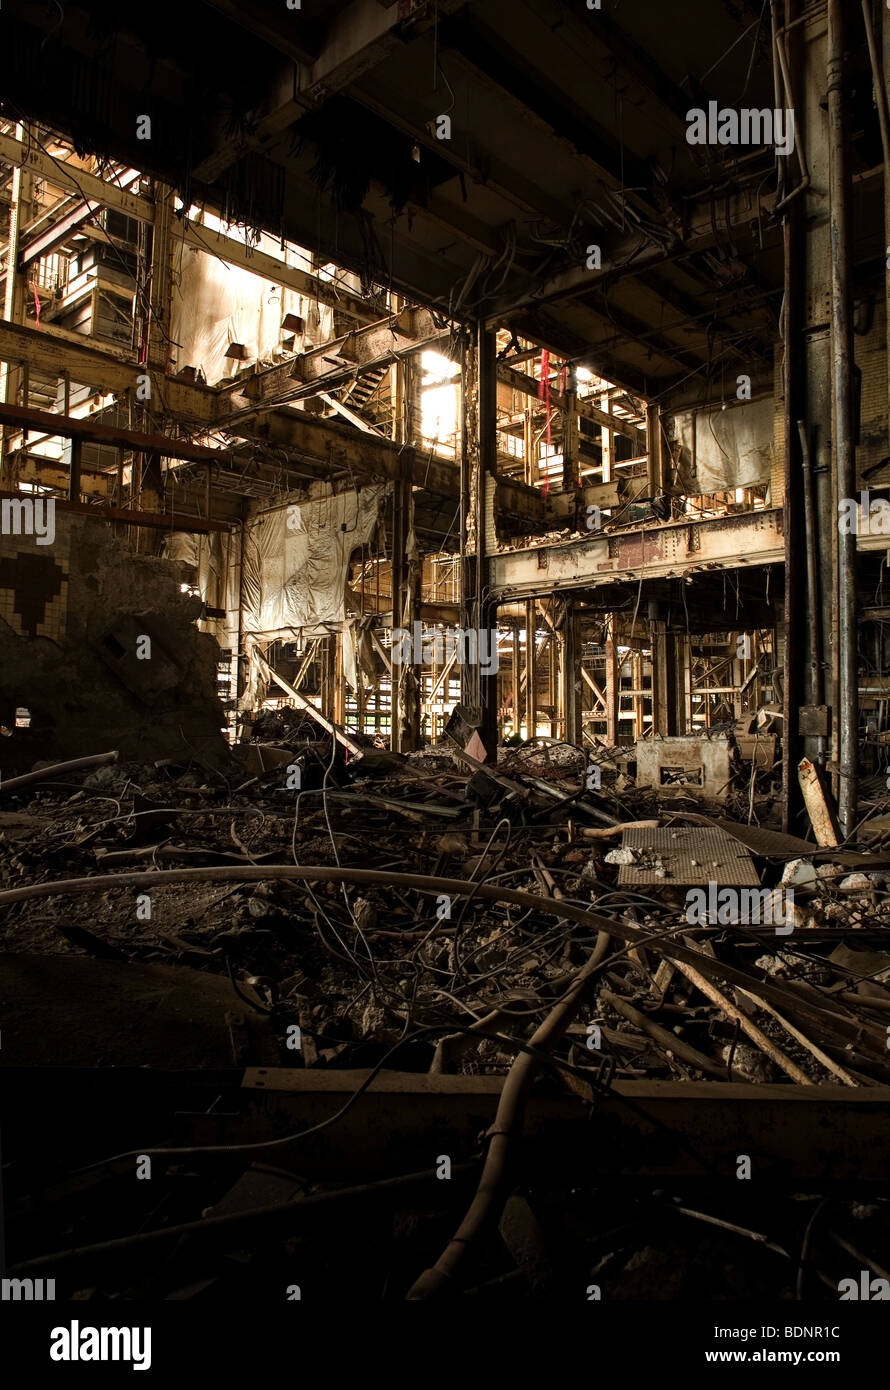 Interior view of a redundant factory - Stock Image